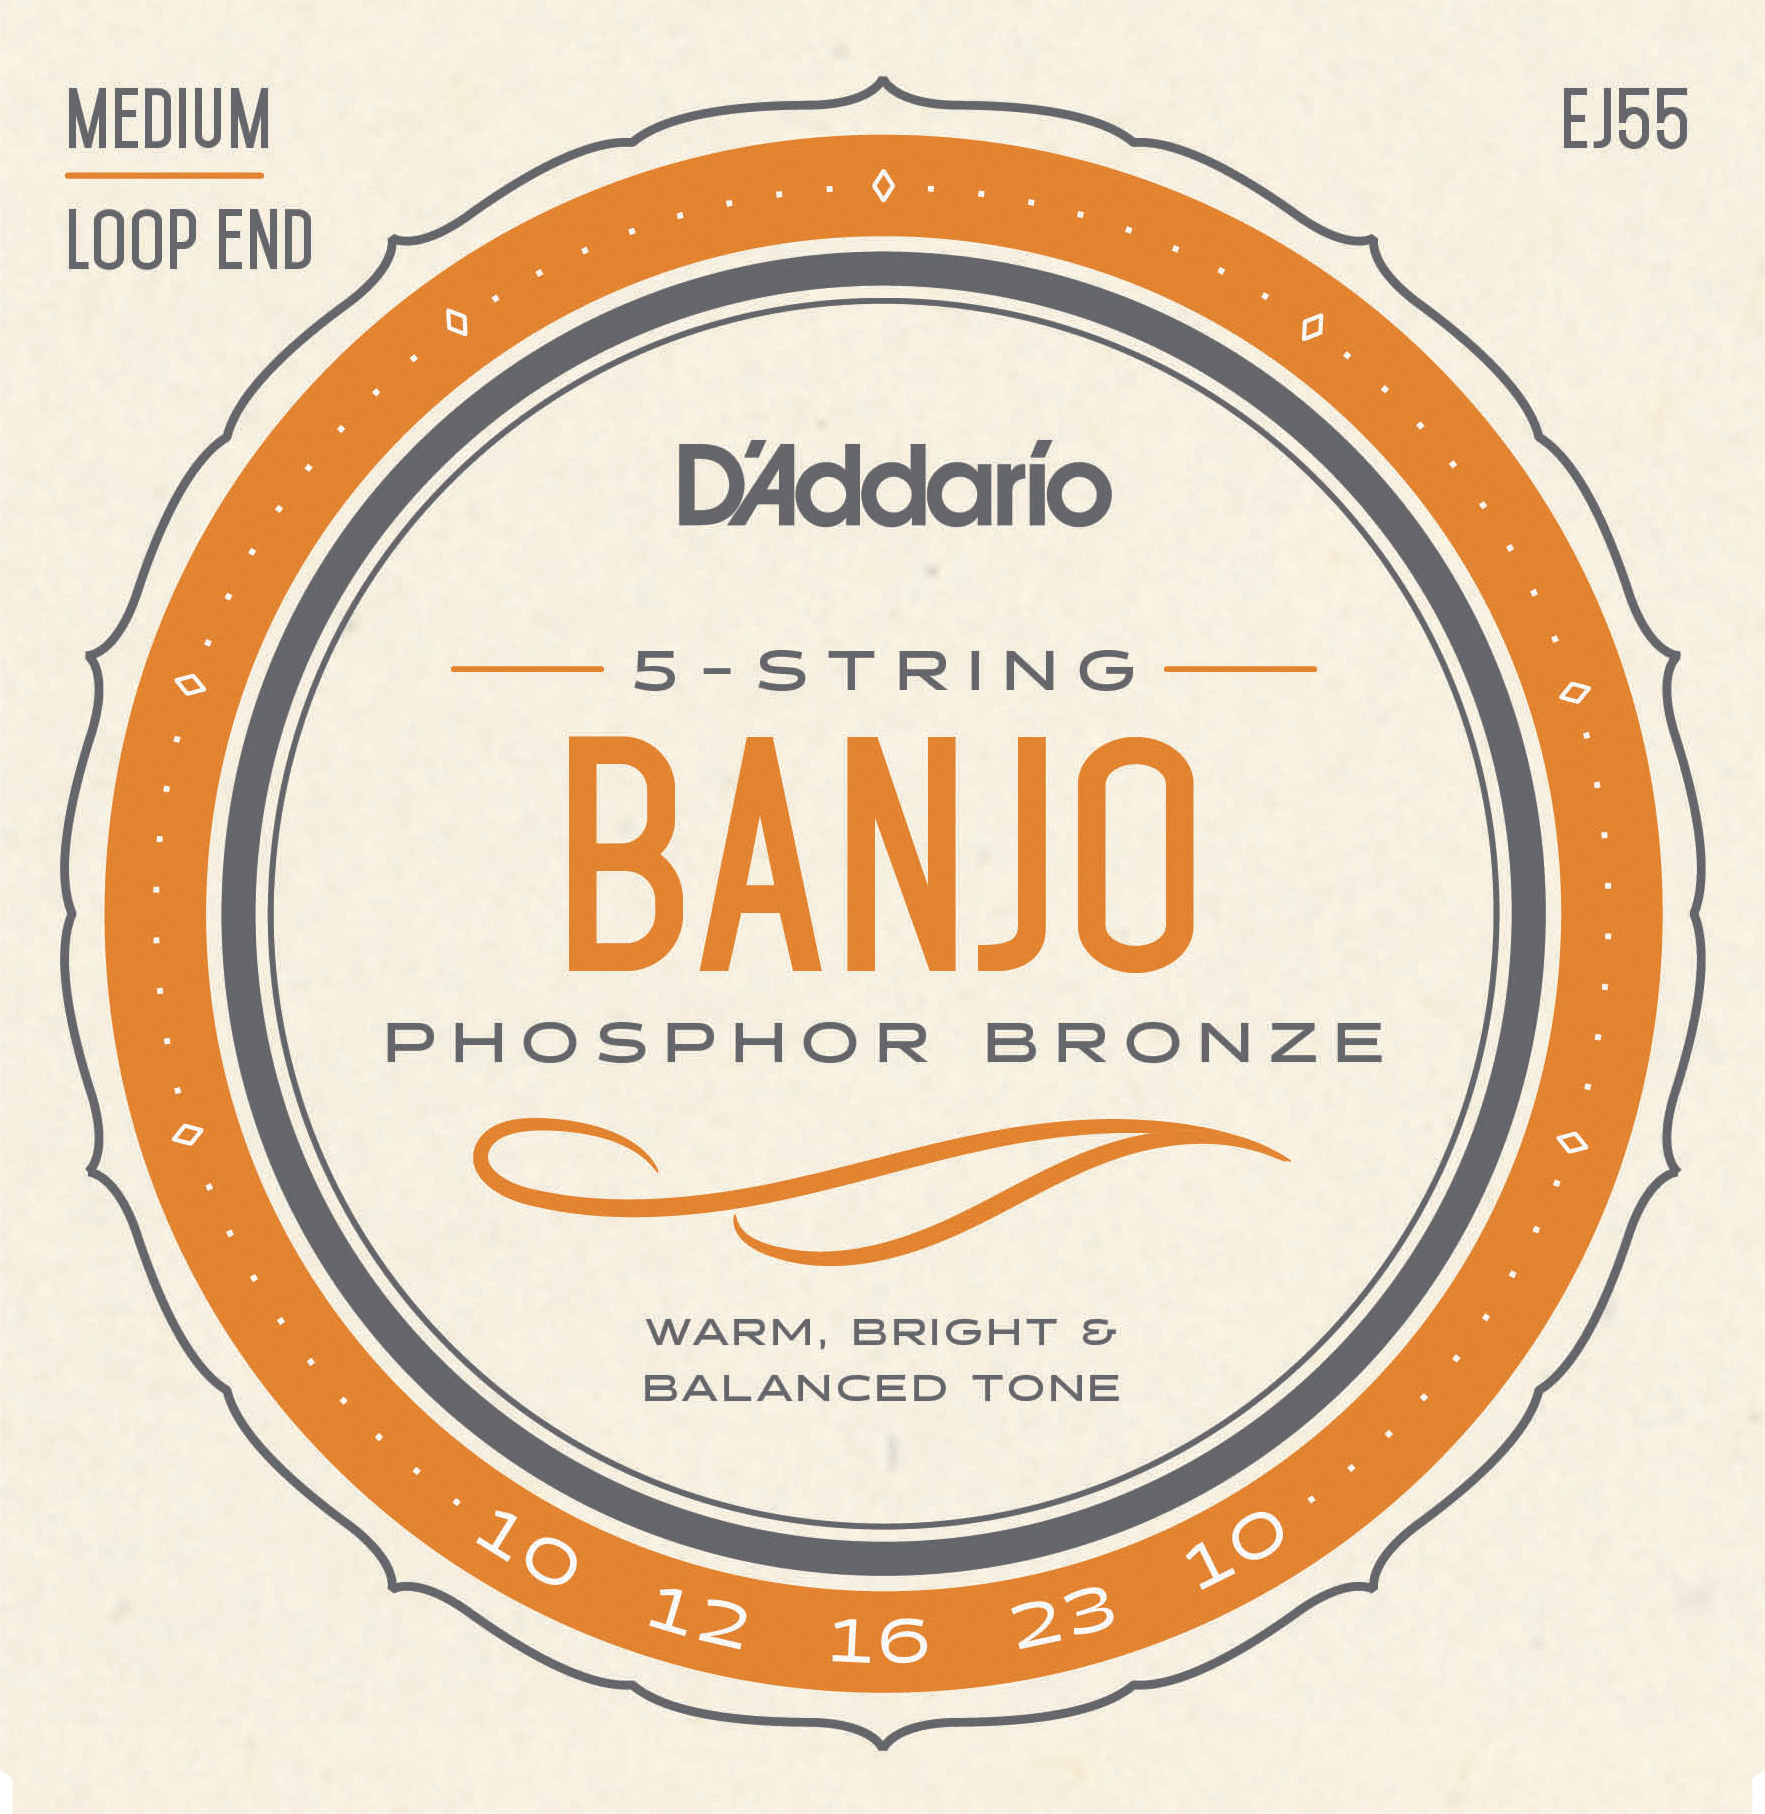 D'Addario Phosphor Bronze EJ55 Banjo Strings, 5-String, Medium, 10-23